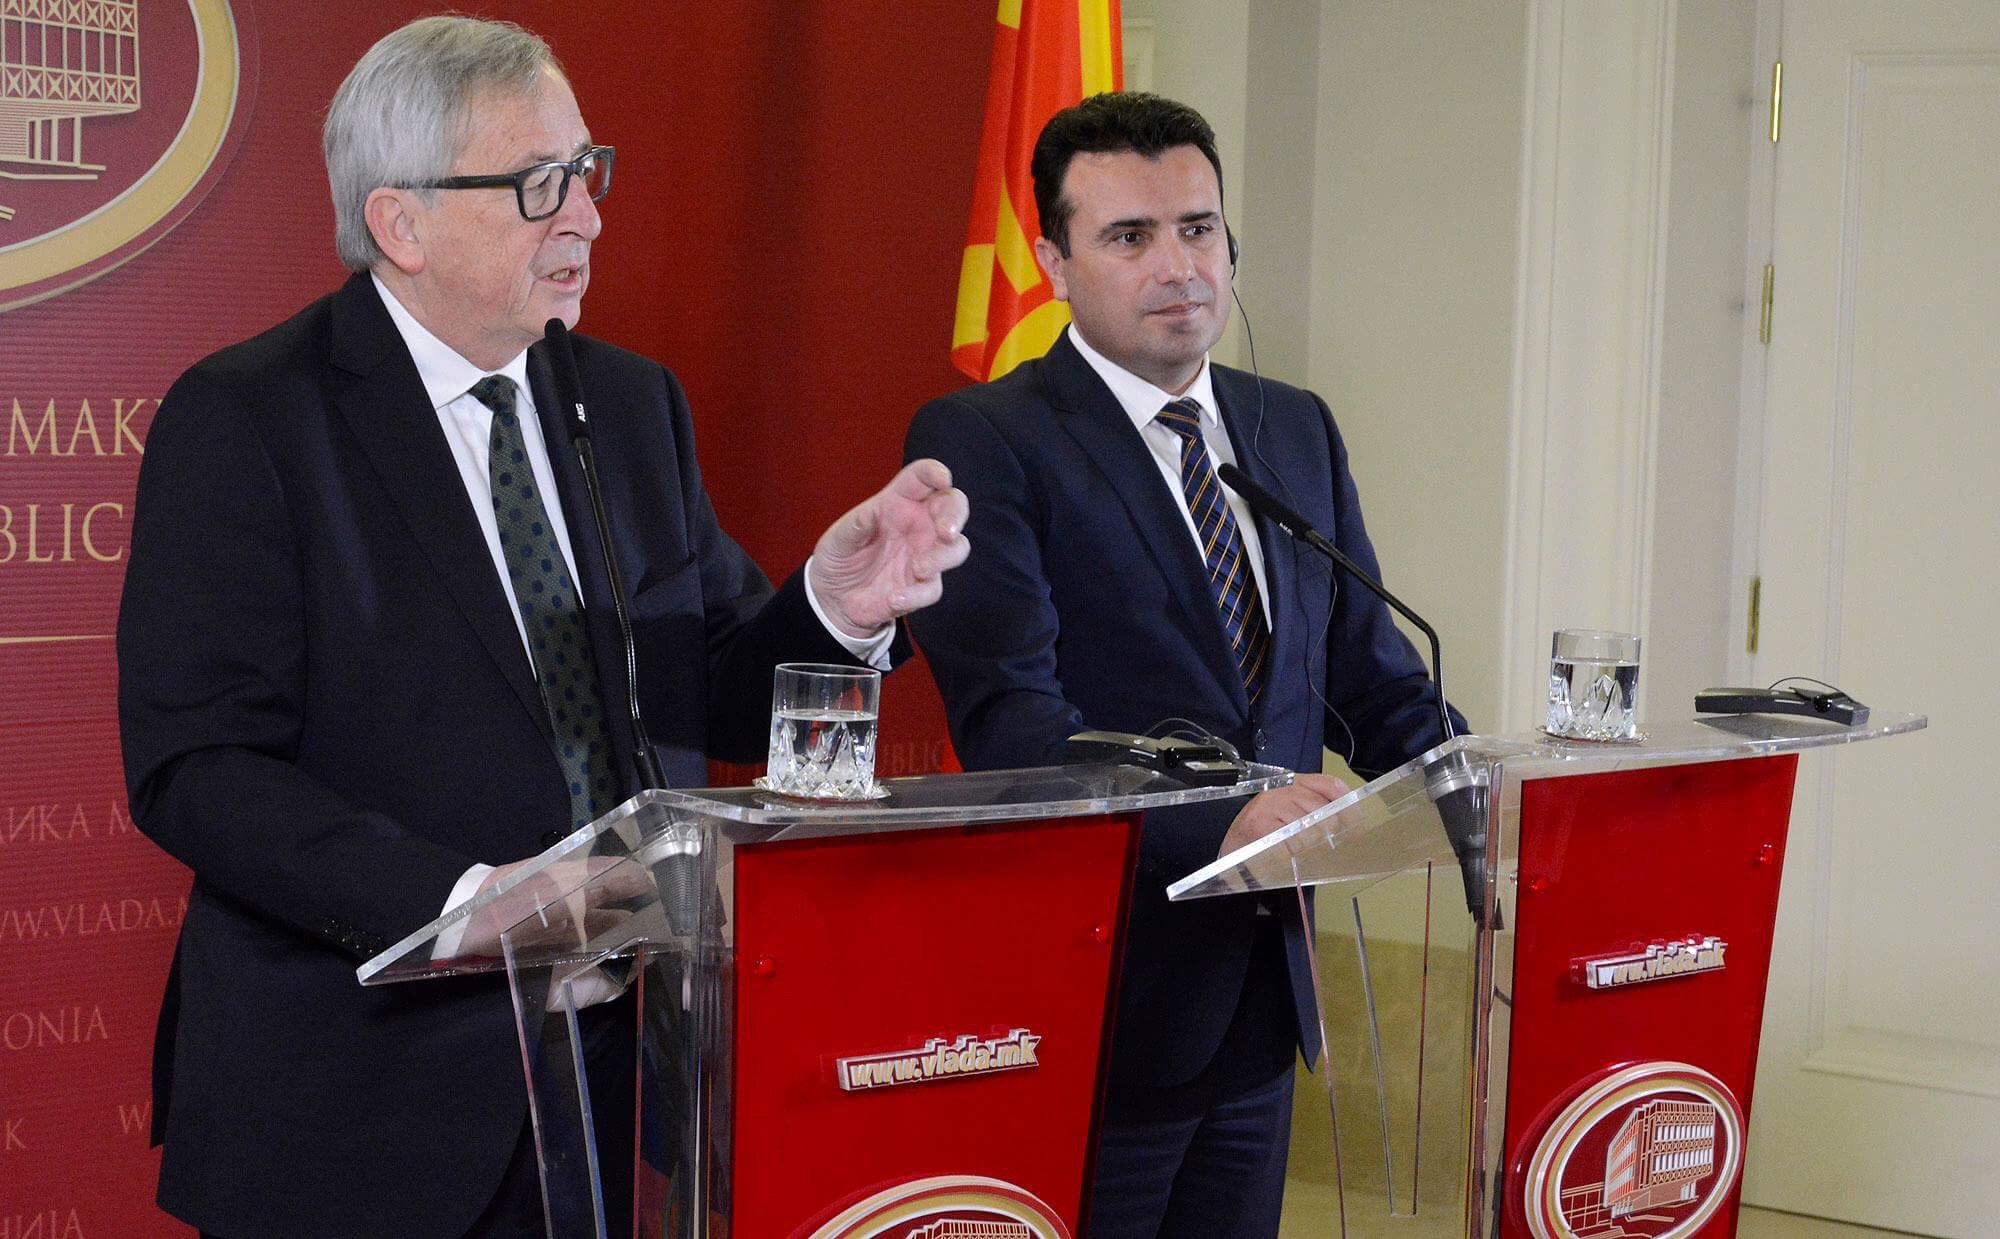 Juncker: If fYROM continues along this path, the European perspective will not be conditioned